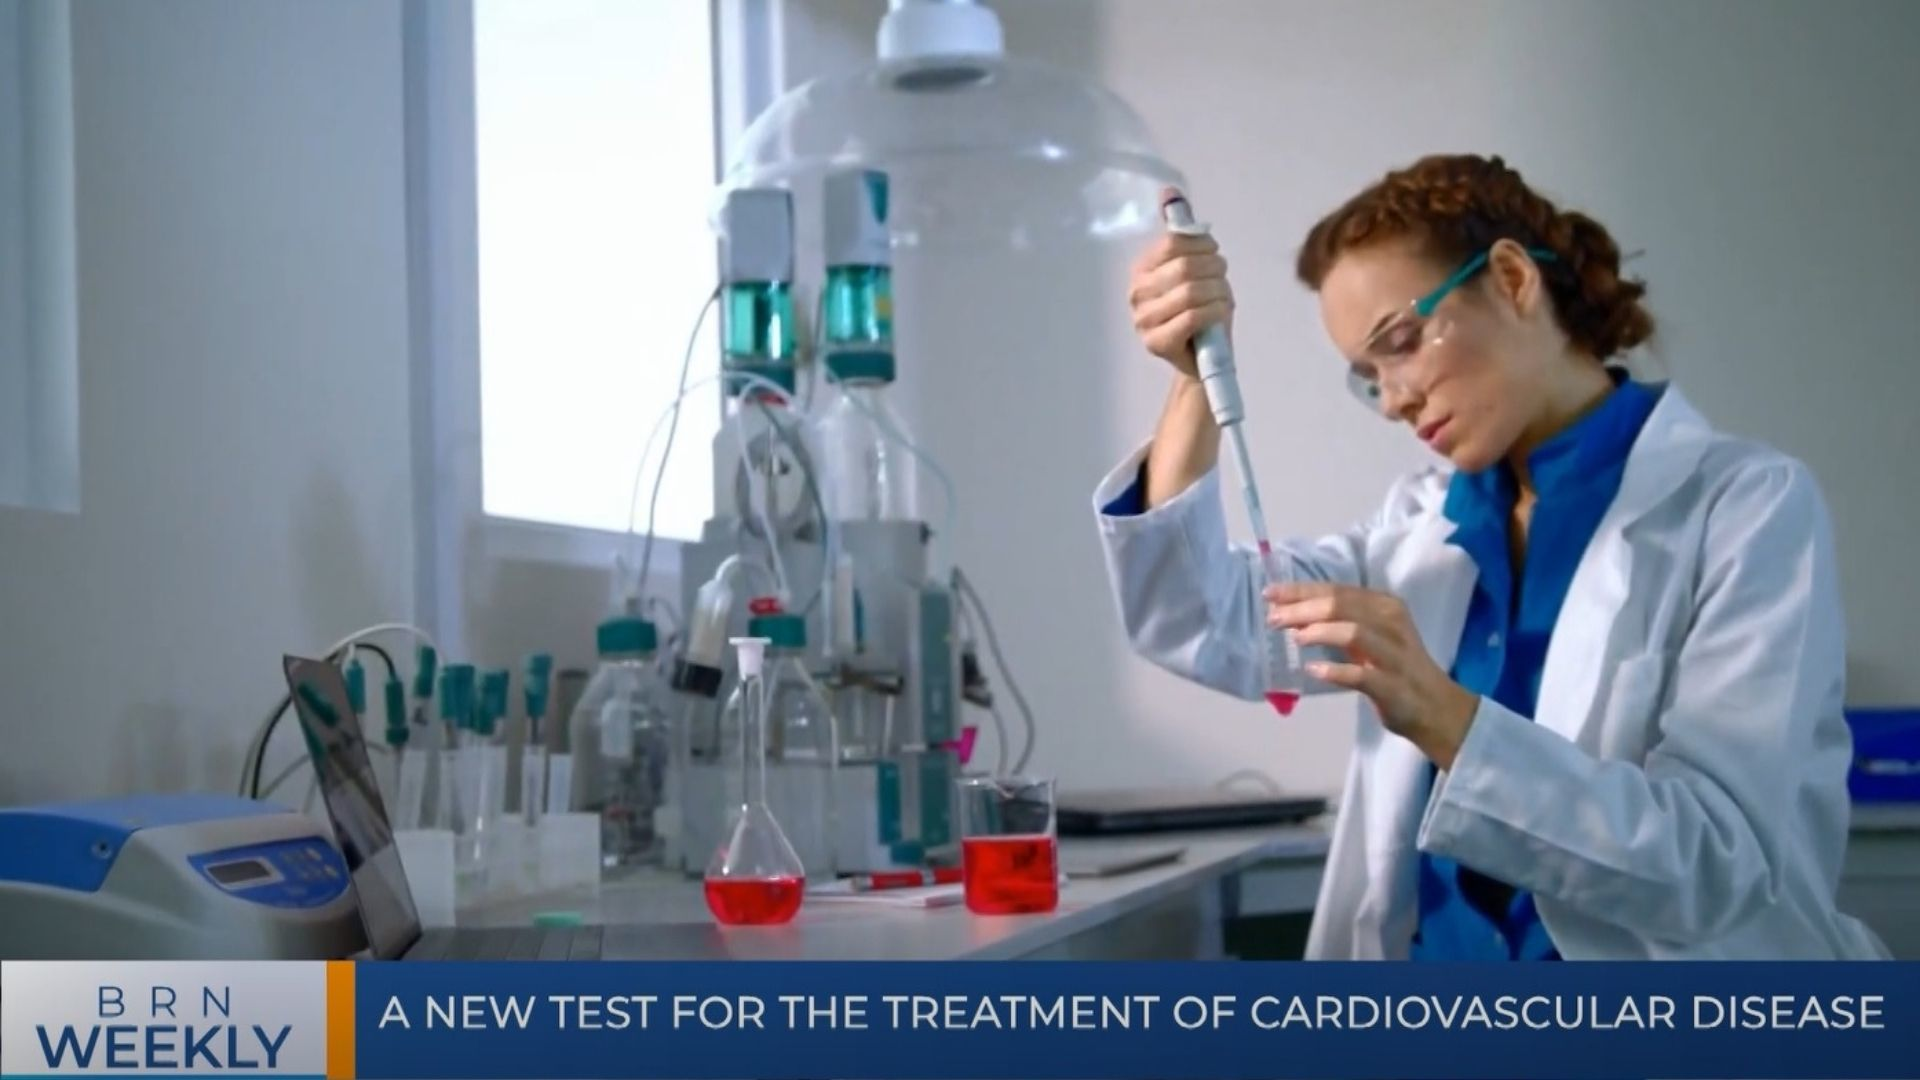 BRN Weekly | A new test for the treatment of cardiovascular disease